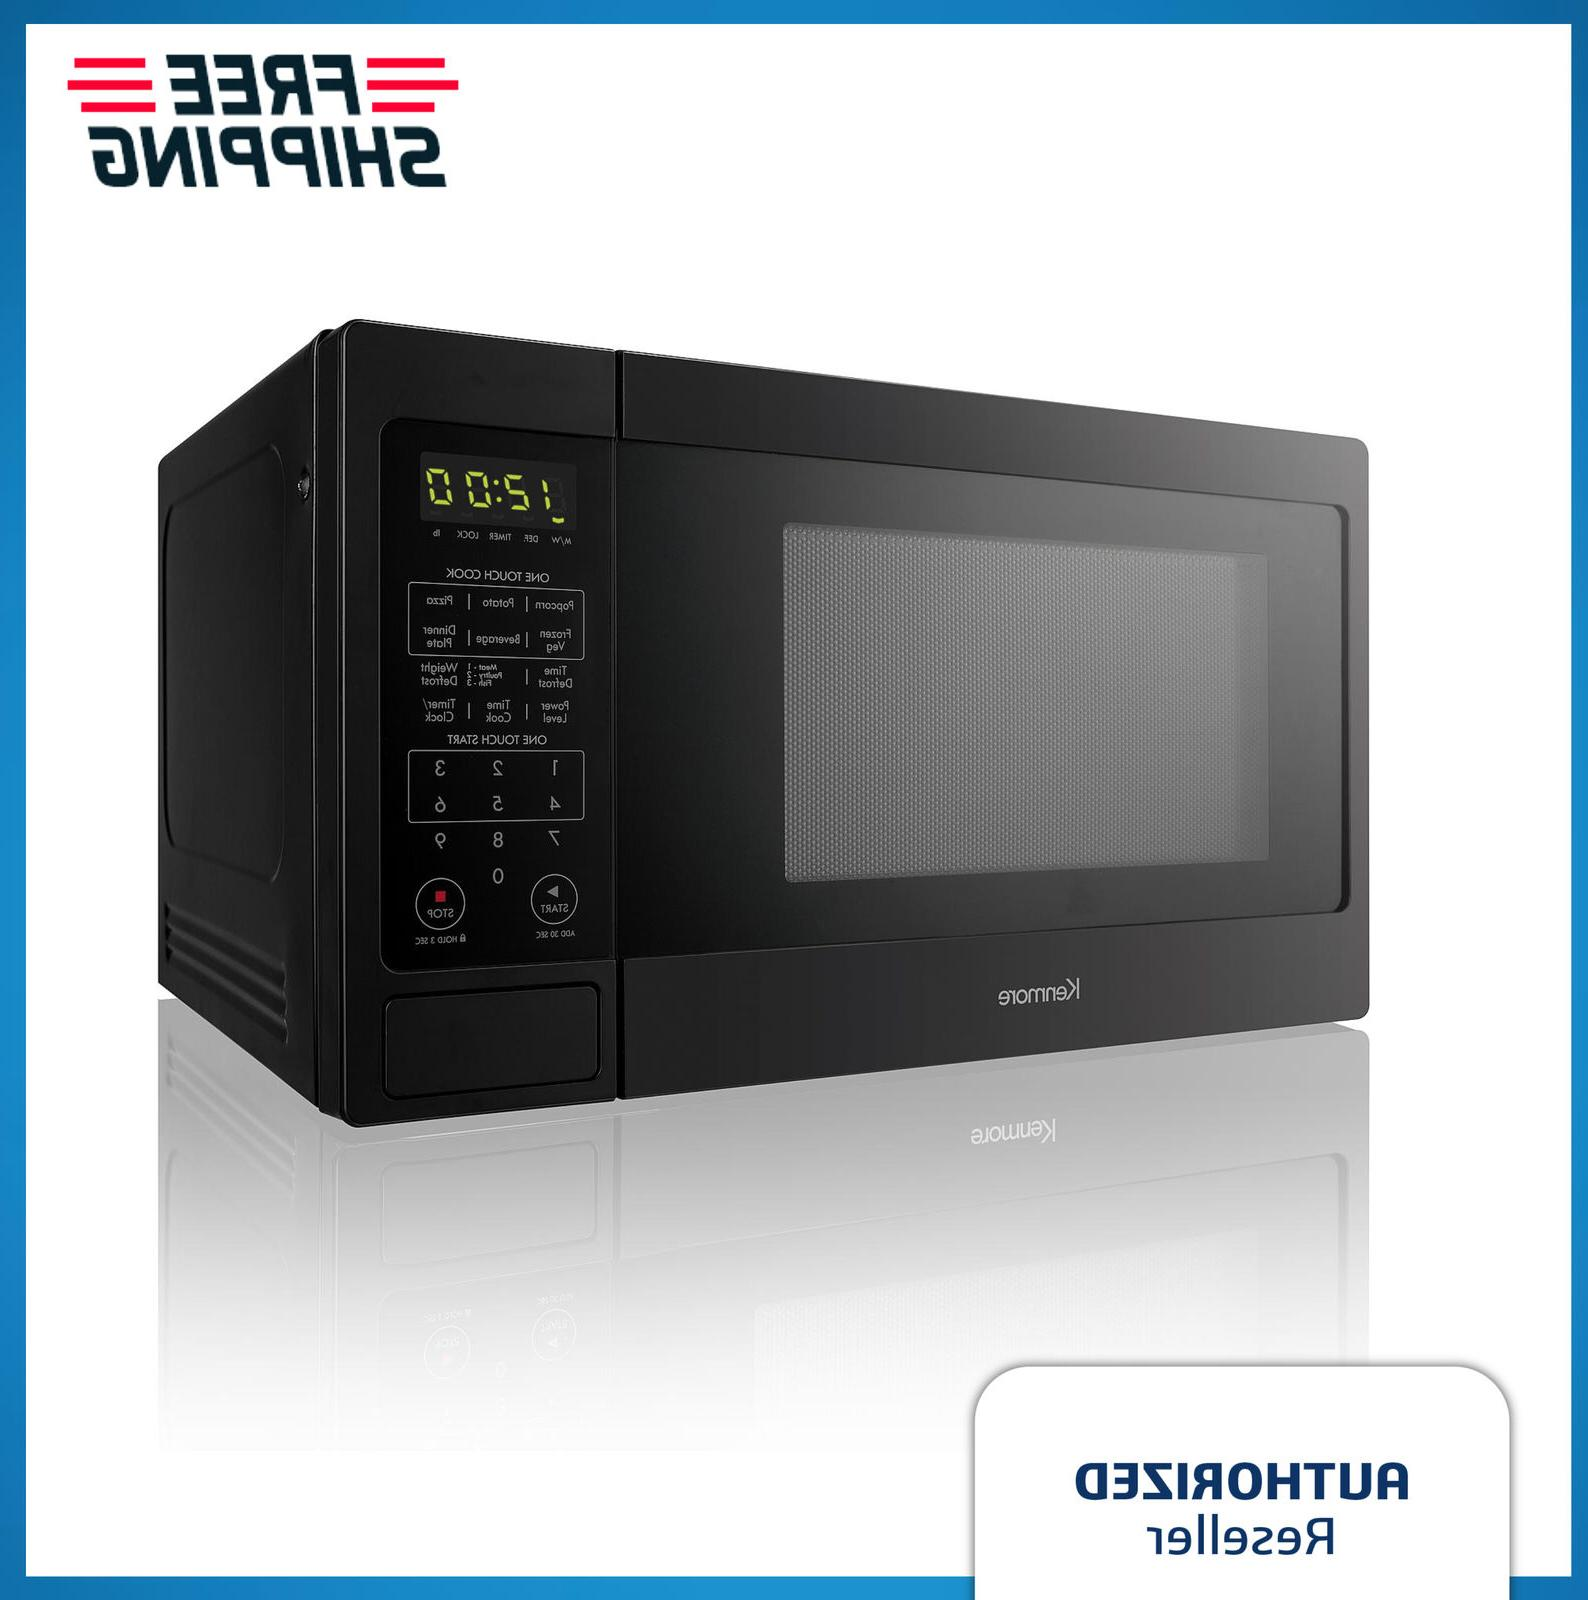 0 9 cu ft kenmore compact countertop microwave white microwave ovens radom speed cooking microwave ovens